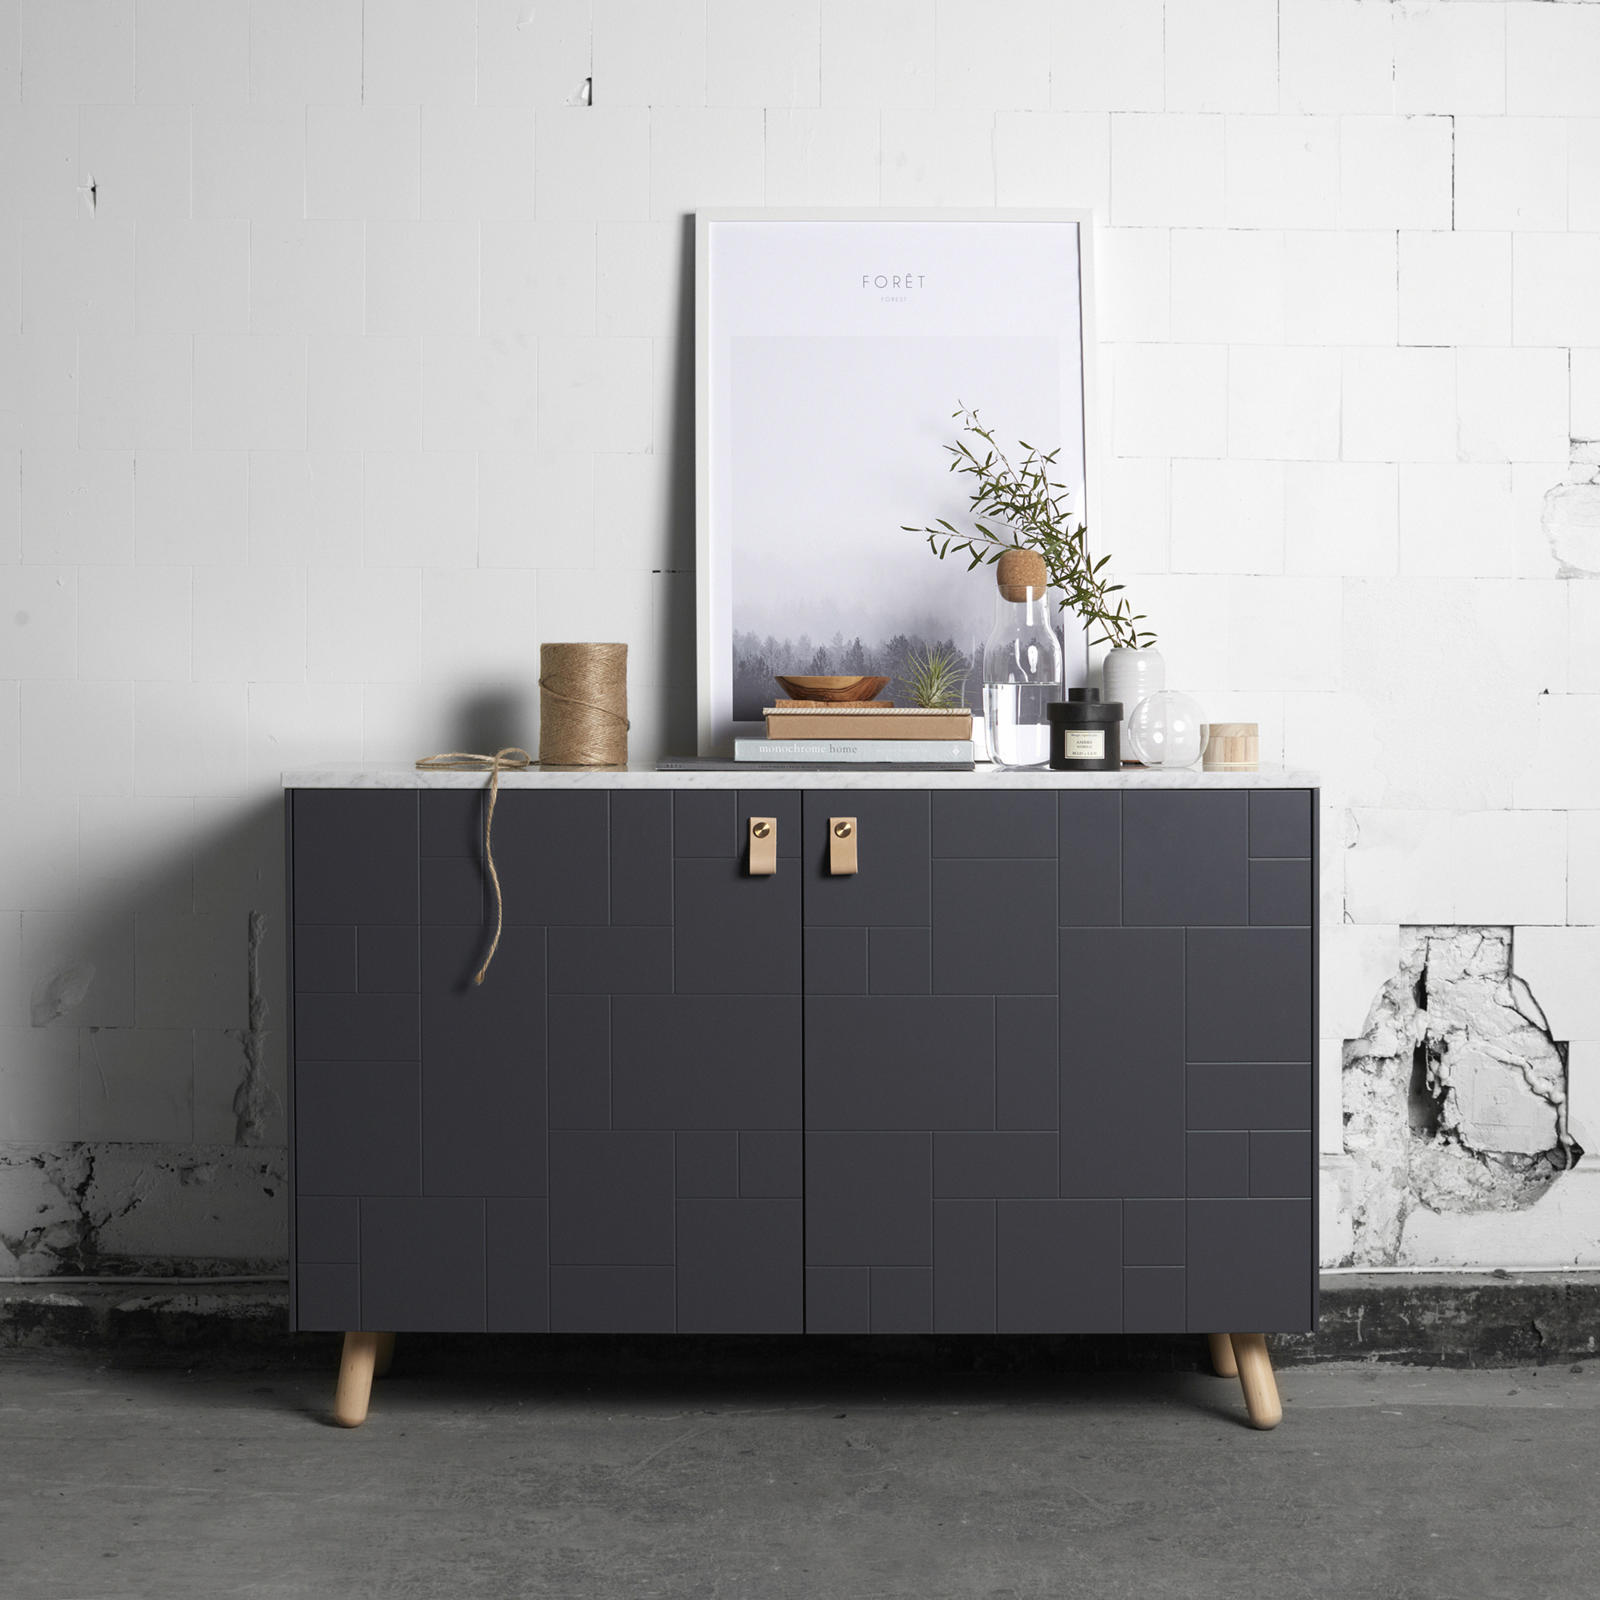 Furniture leg in clear-coated birch on a sideboard built from Ikea's Bestå frame